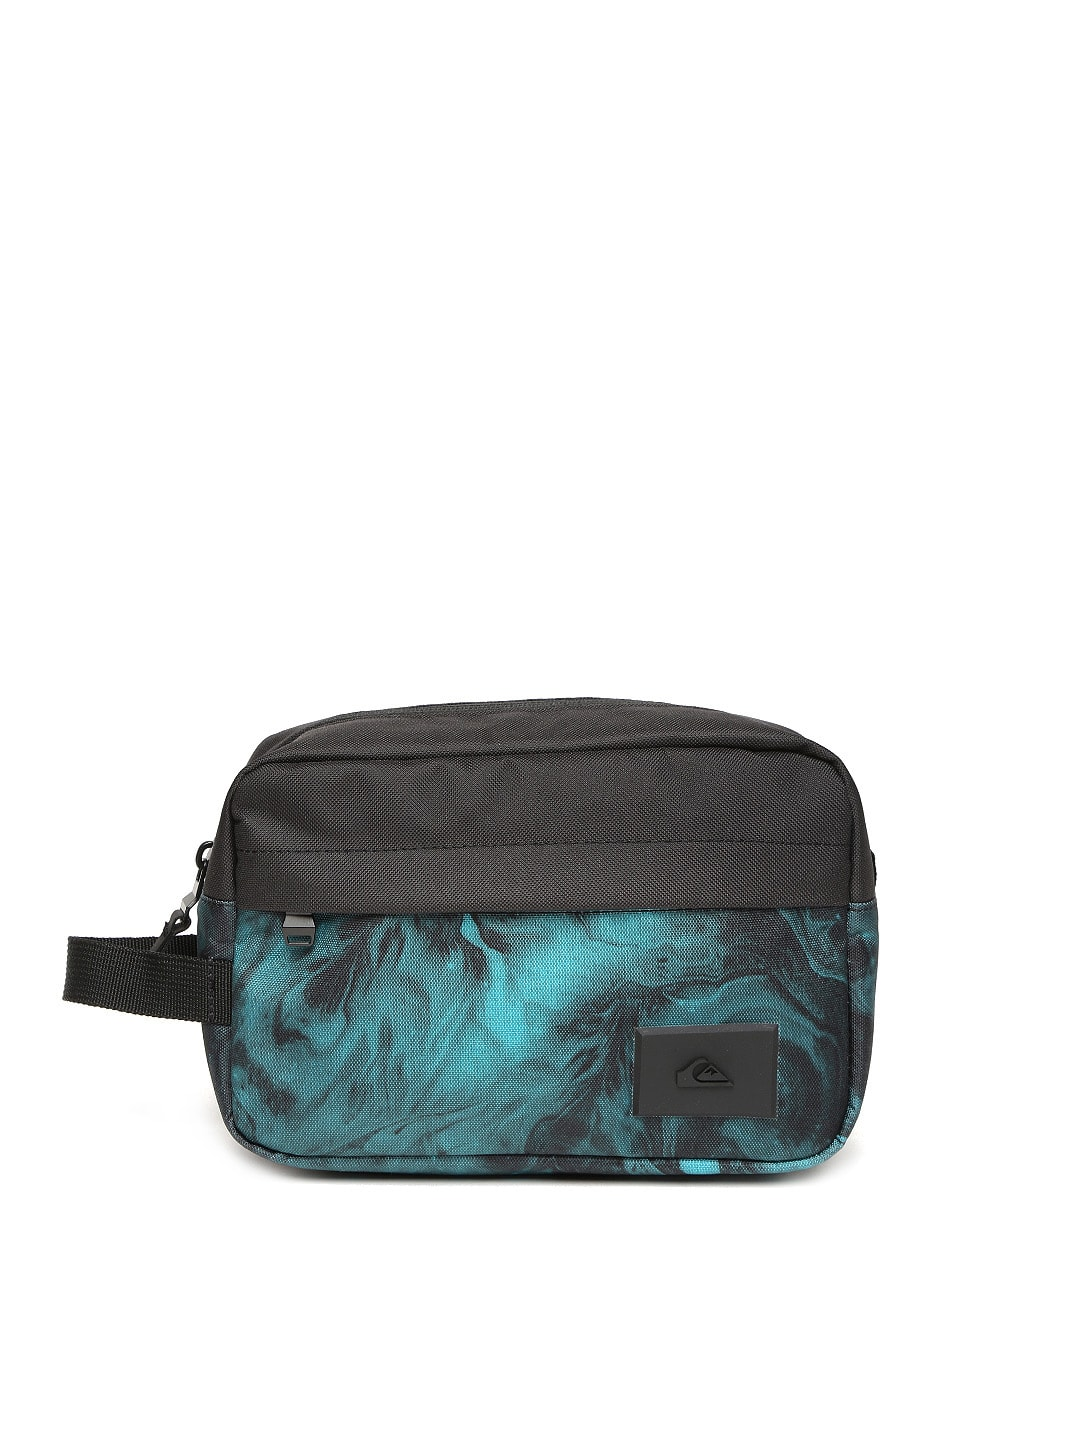 Quiksilver Men Black & Blue Printed Travel Bag